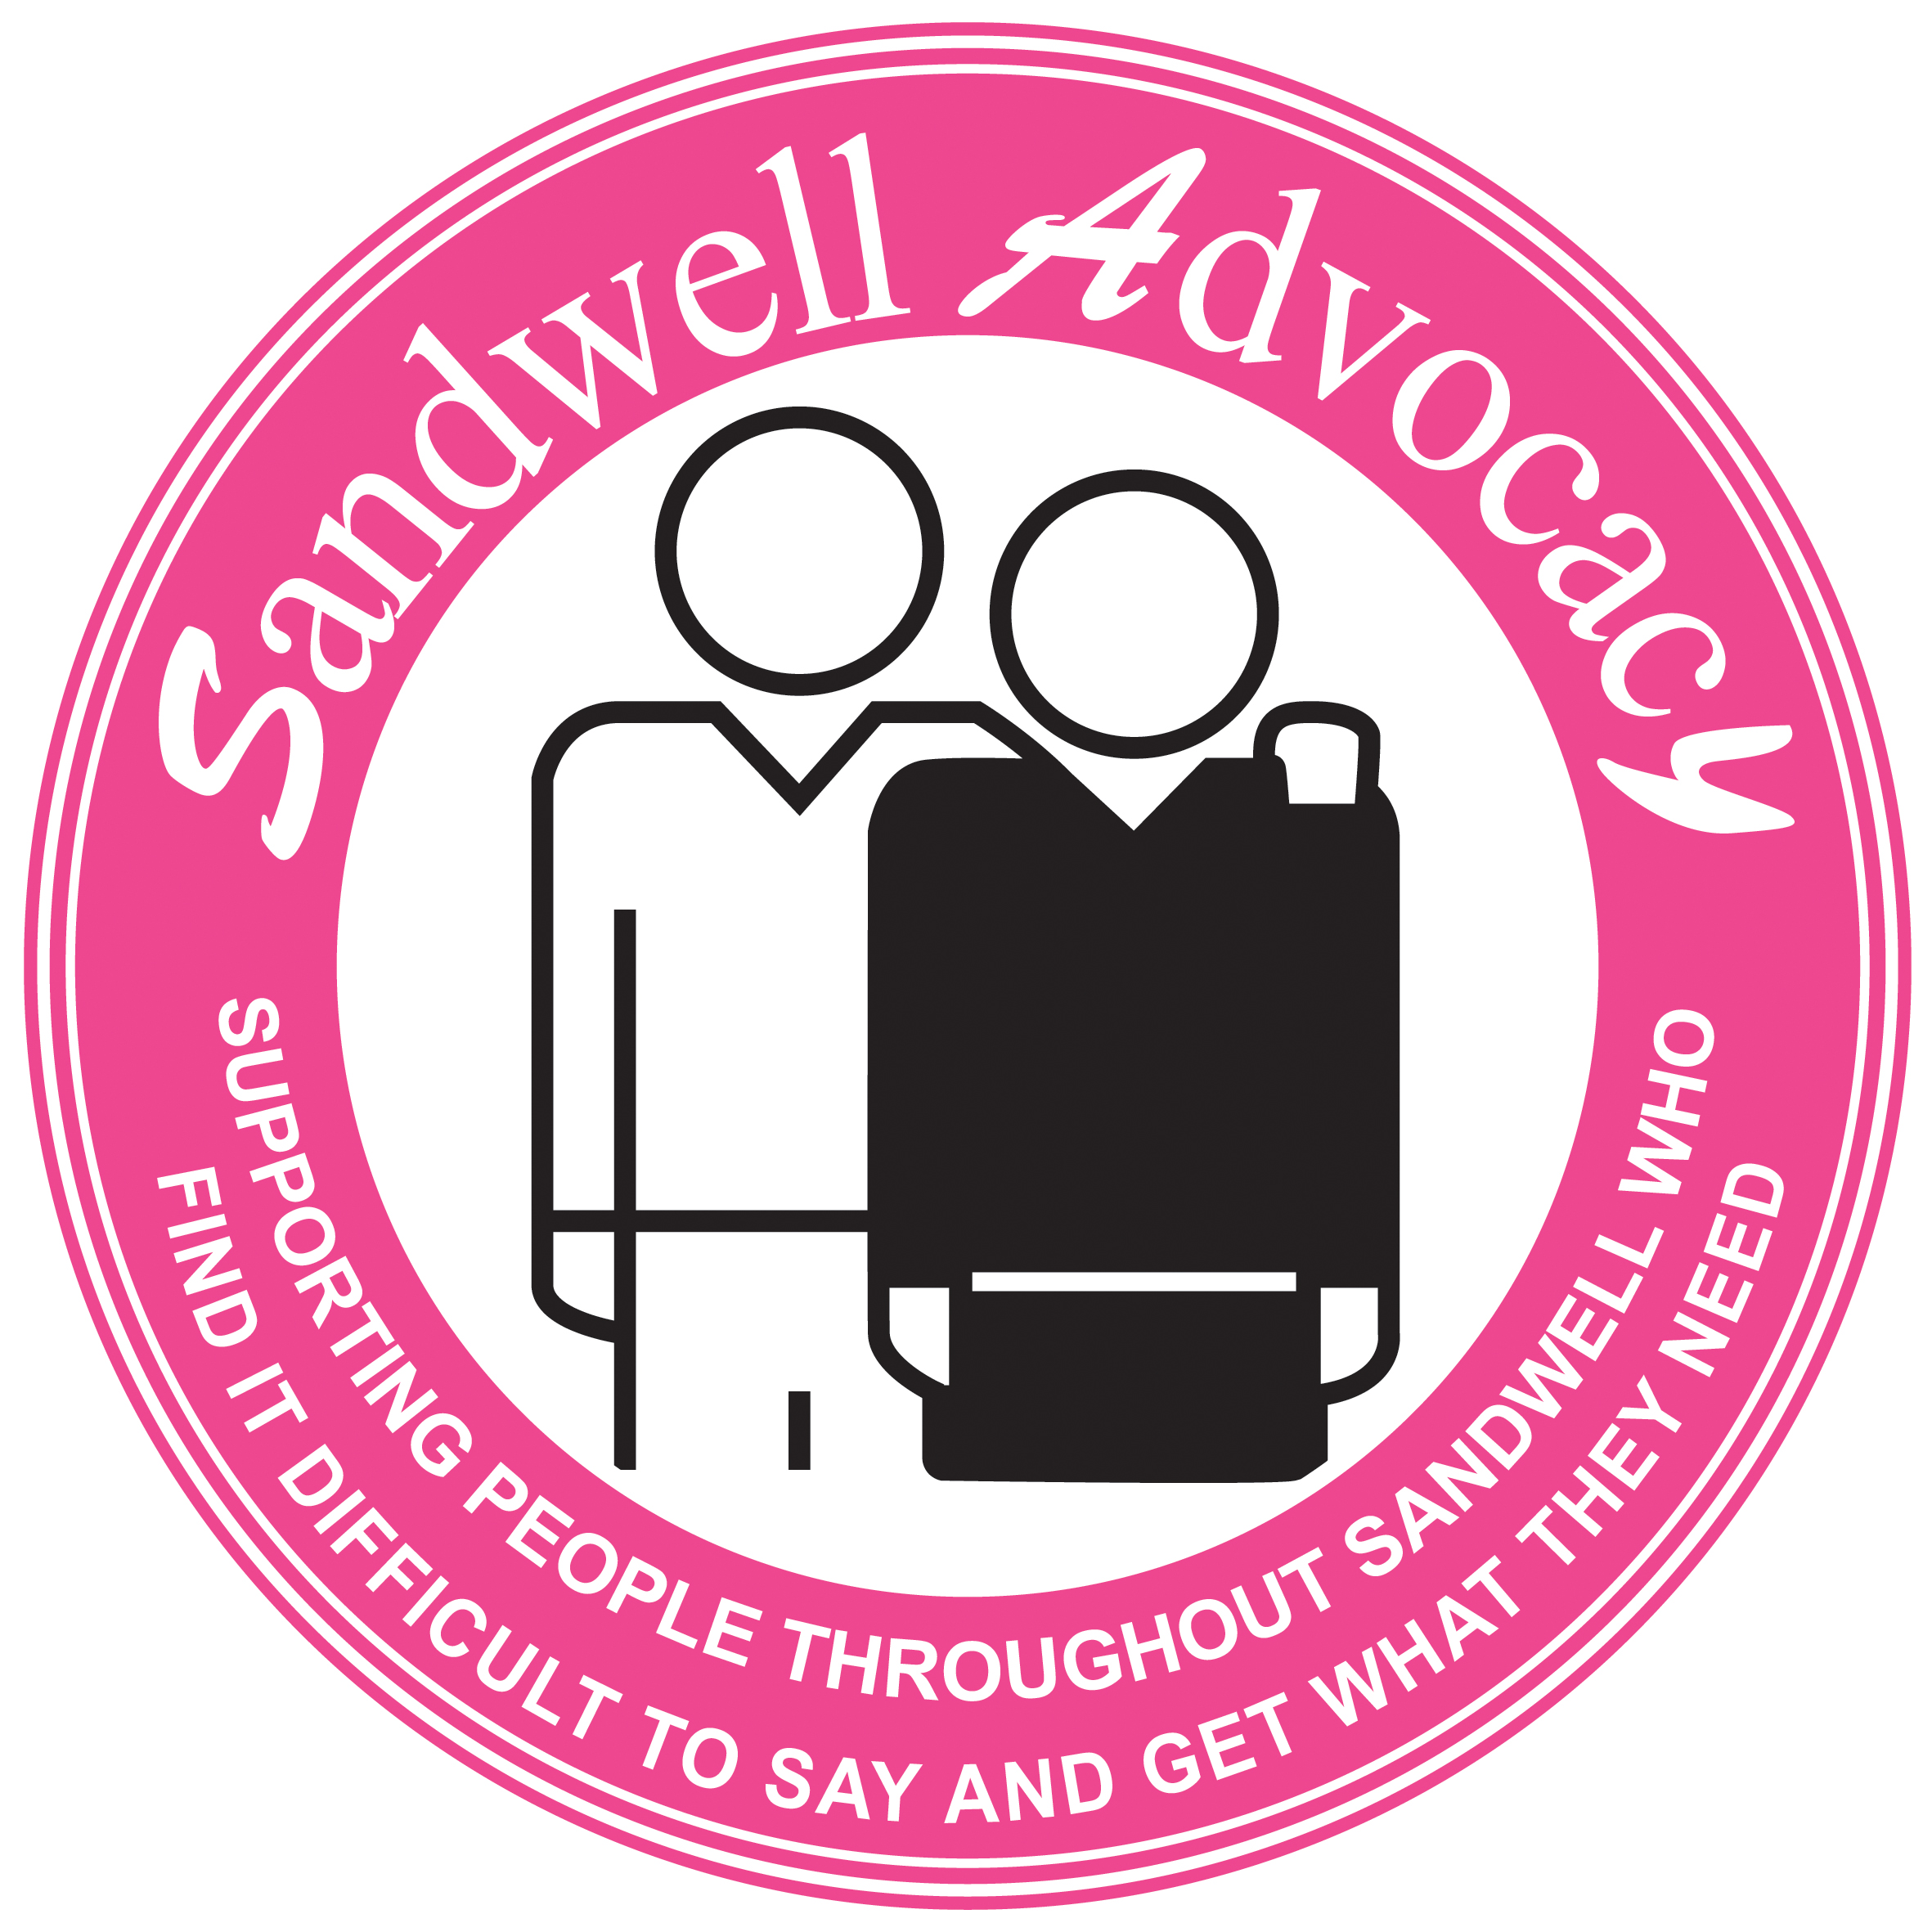 S&well Advocacy